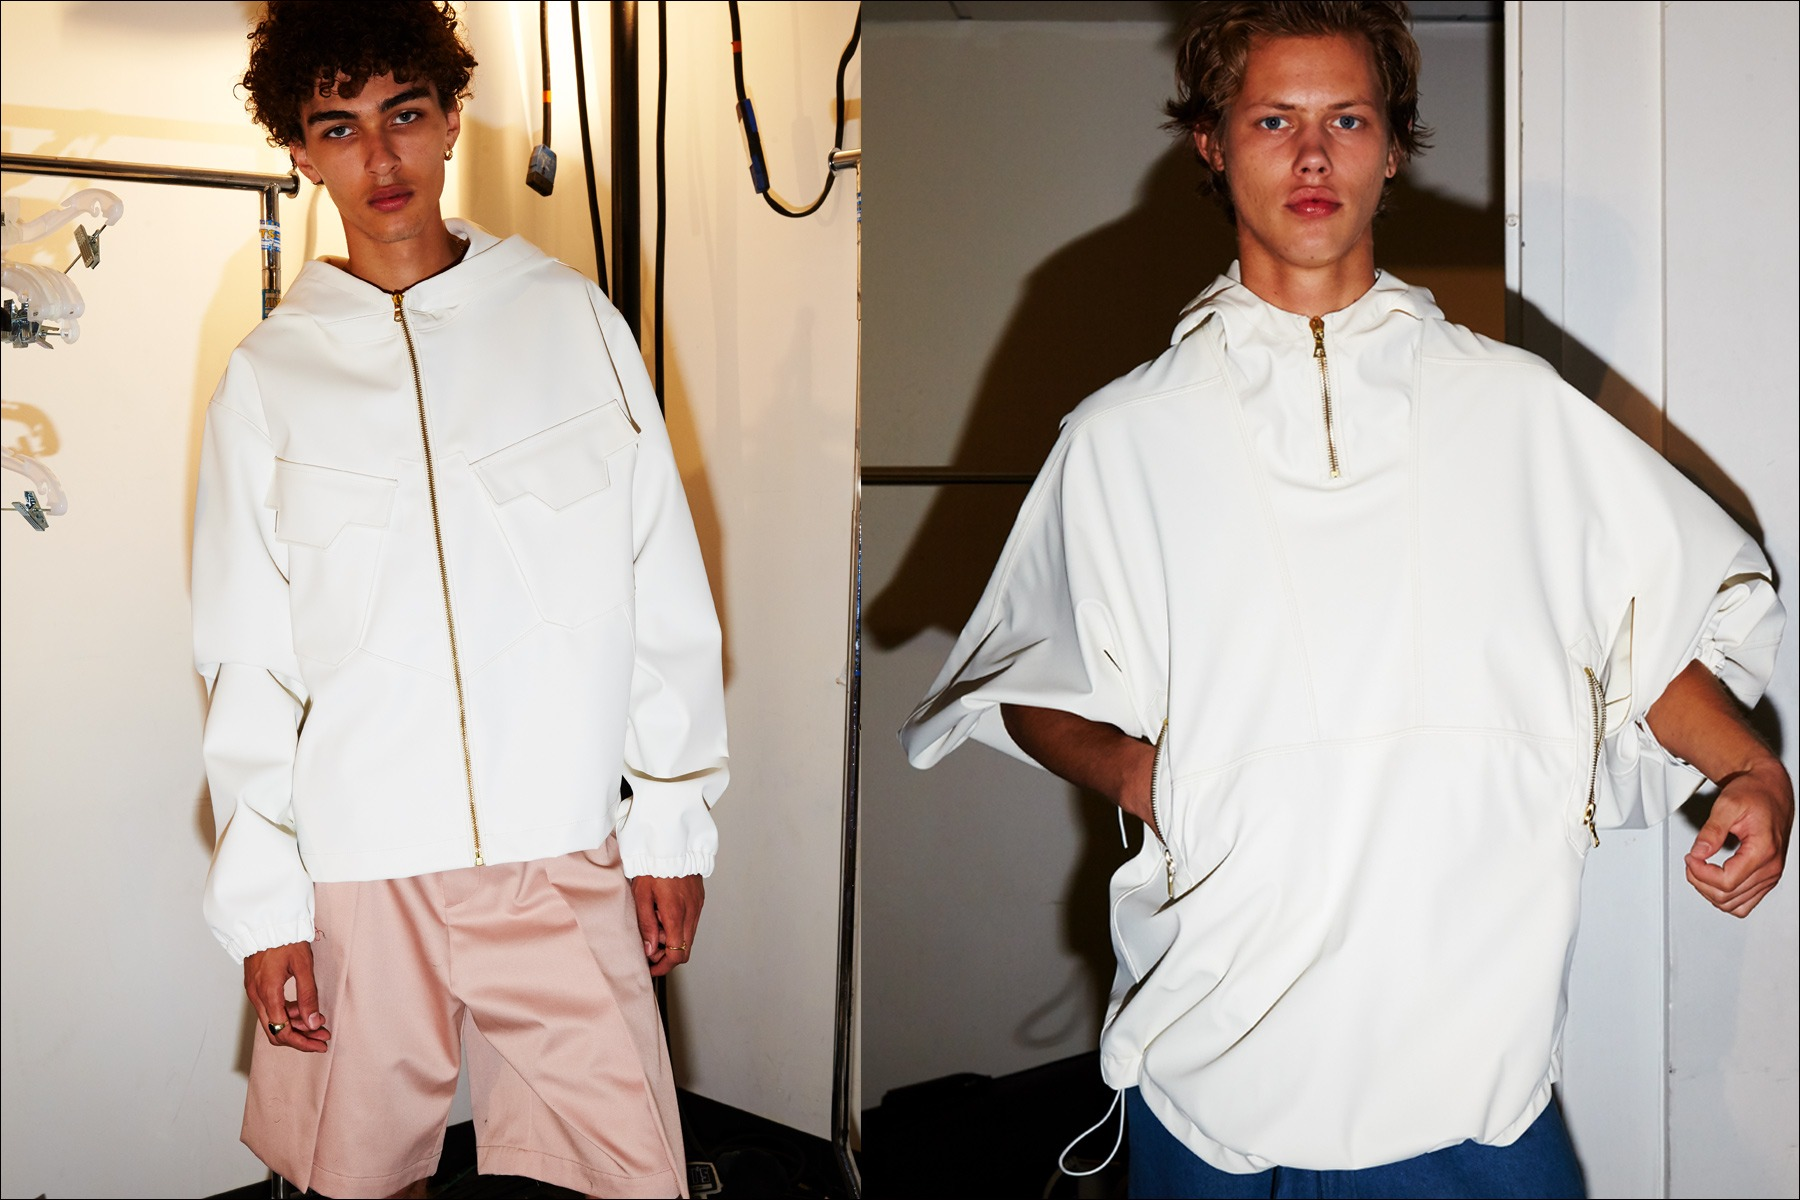 ale models wear white tops backstage at N-p-Elliott Spring/Summer 2018 menswear show. Photographed by Alexander Thompson for Ponyboy magazine NY.